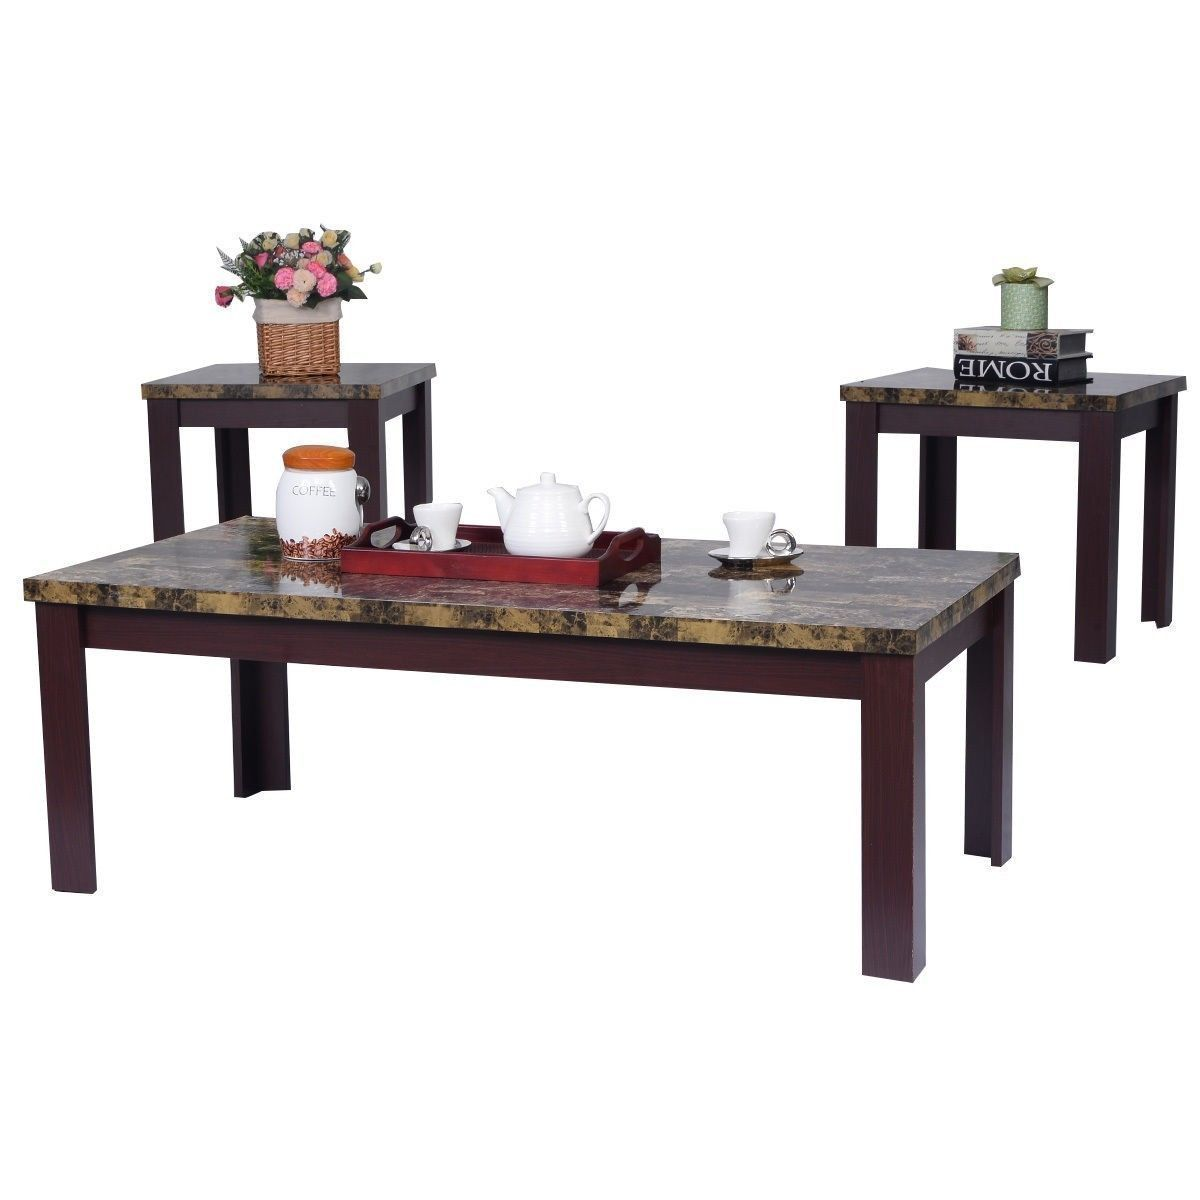 Faux marble coffee table set living room sofa accent end corner 3 piece set new tables Living room coffee table sets